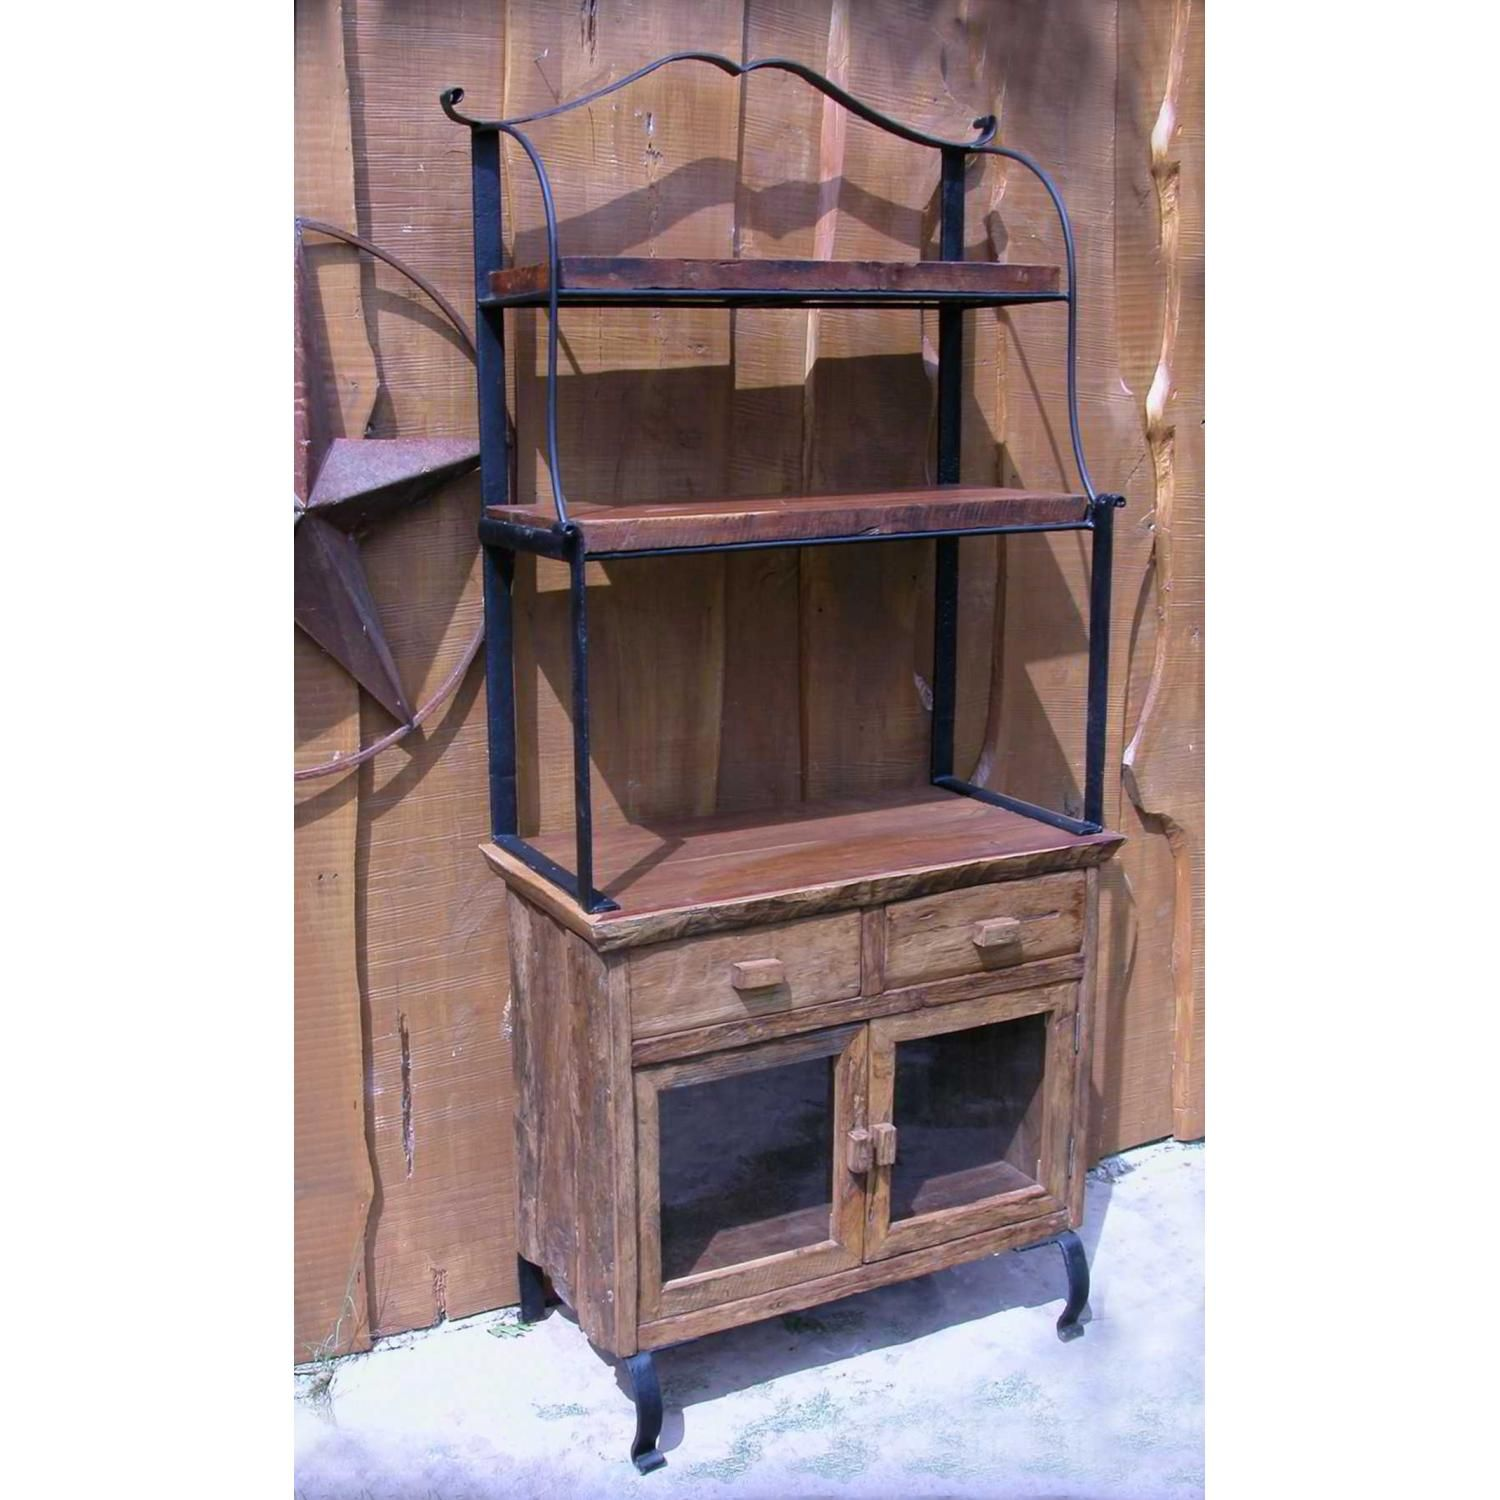 Antique Wooden Bakers Rack Bakers Rack Industrial Bakers Racks